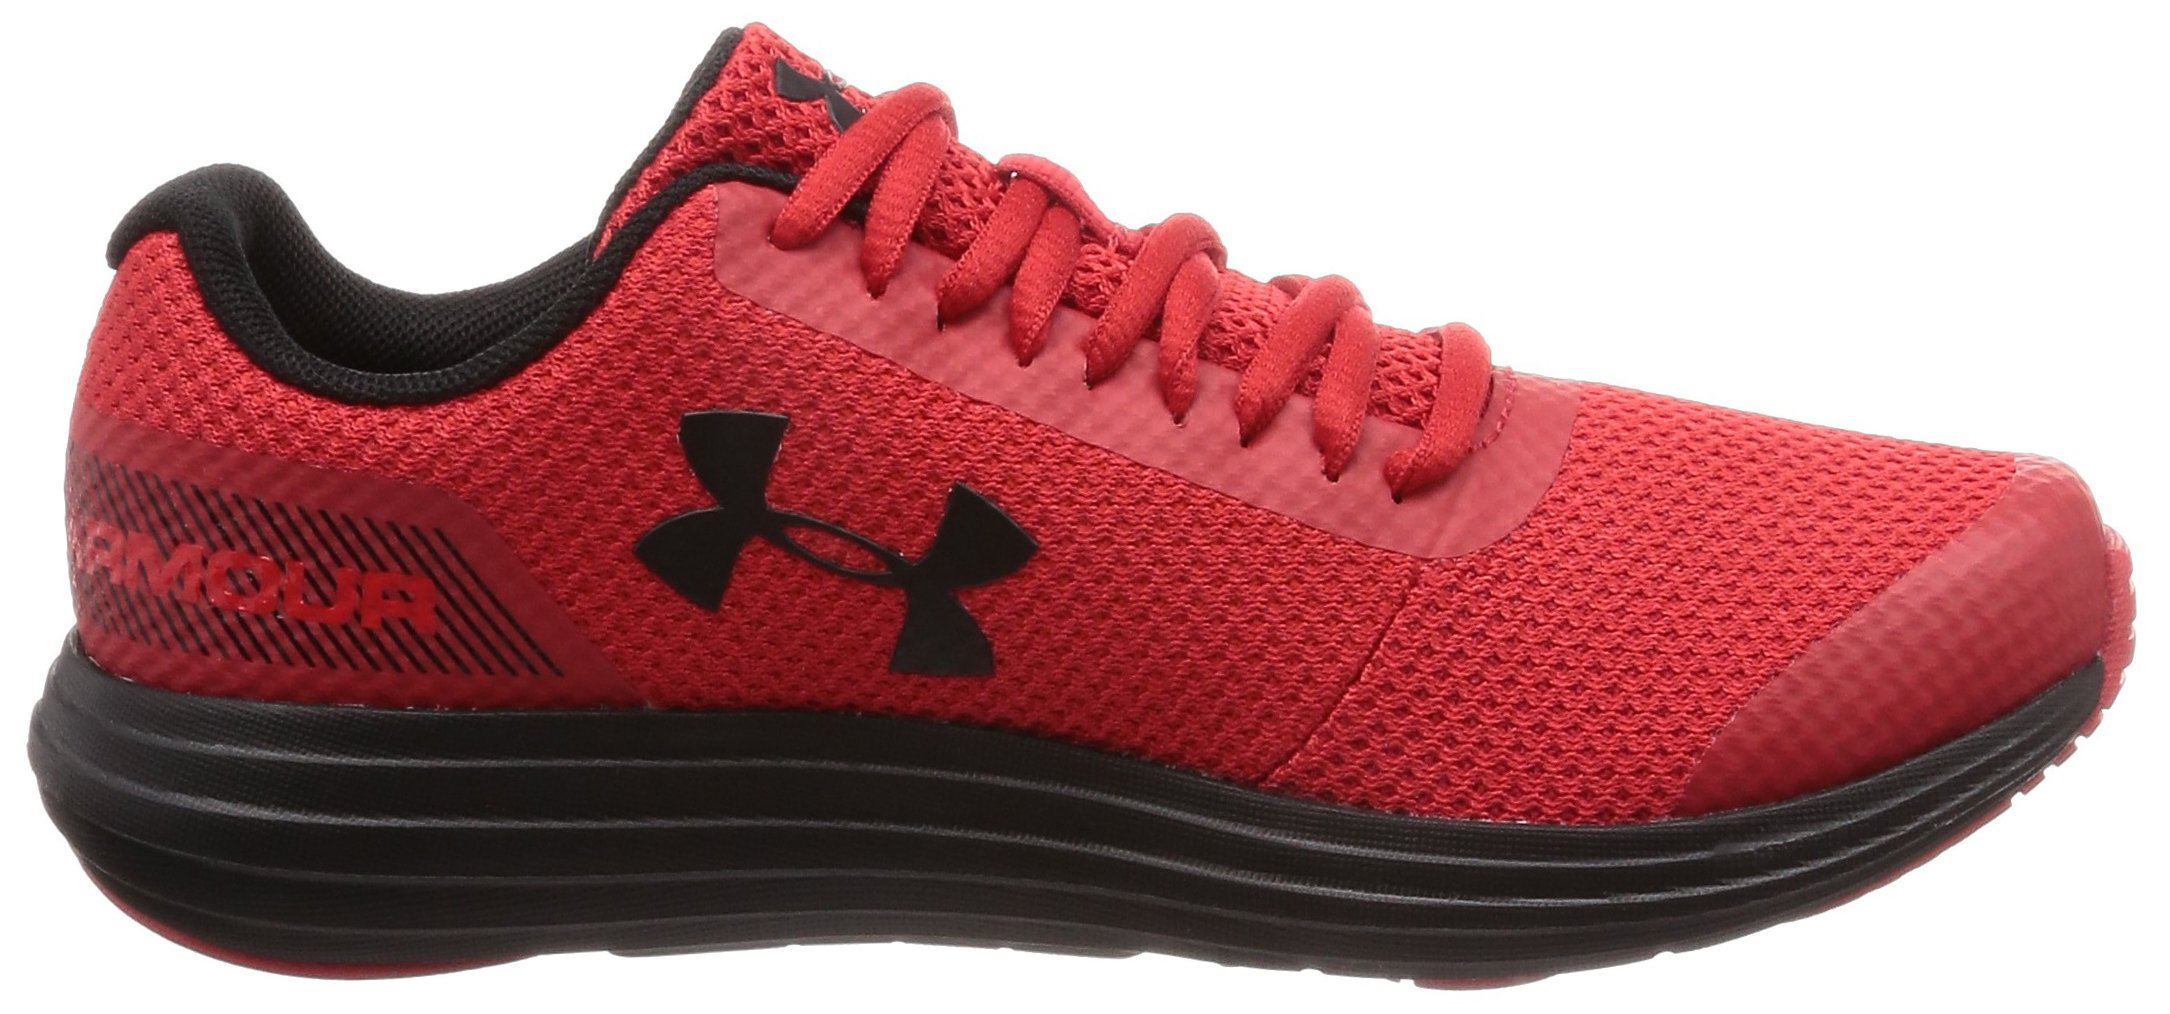 Under Armour Boys' Grade School Surge RN Sneaker, Red (600)/Black, 3.5 by Under Armour (Image #10)